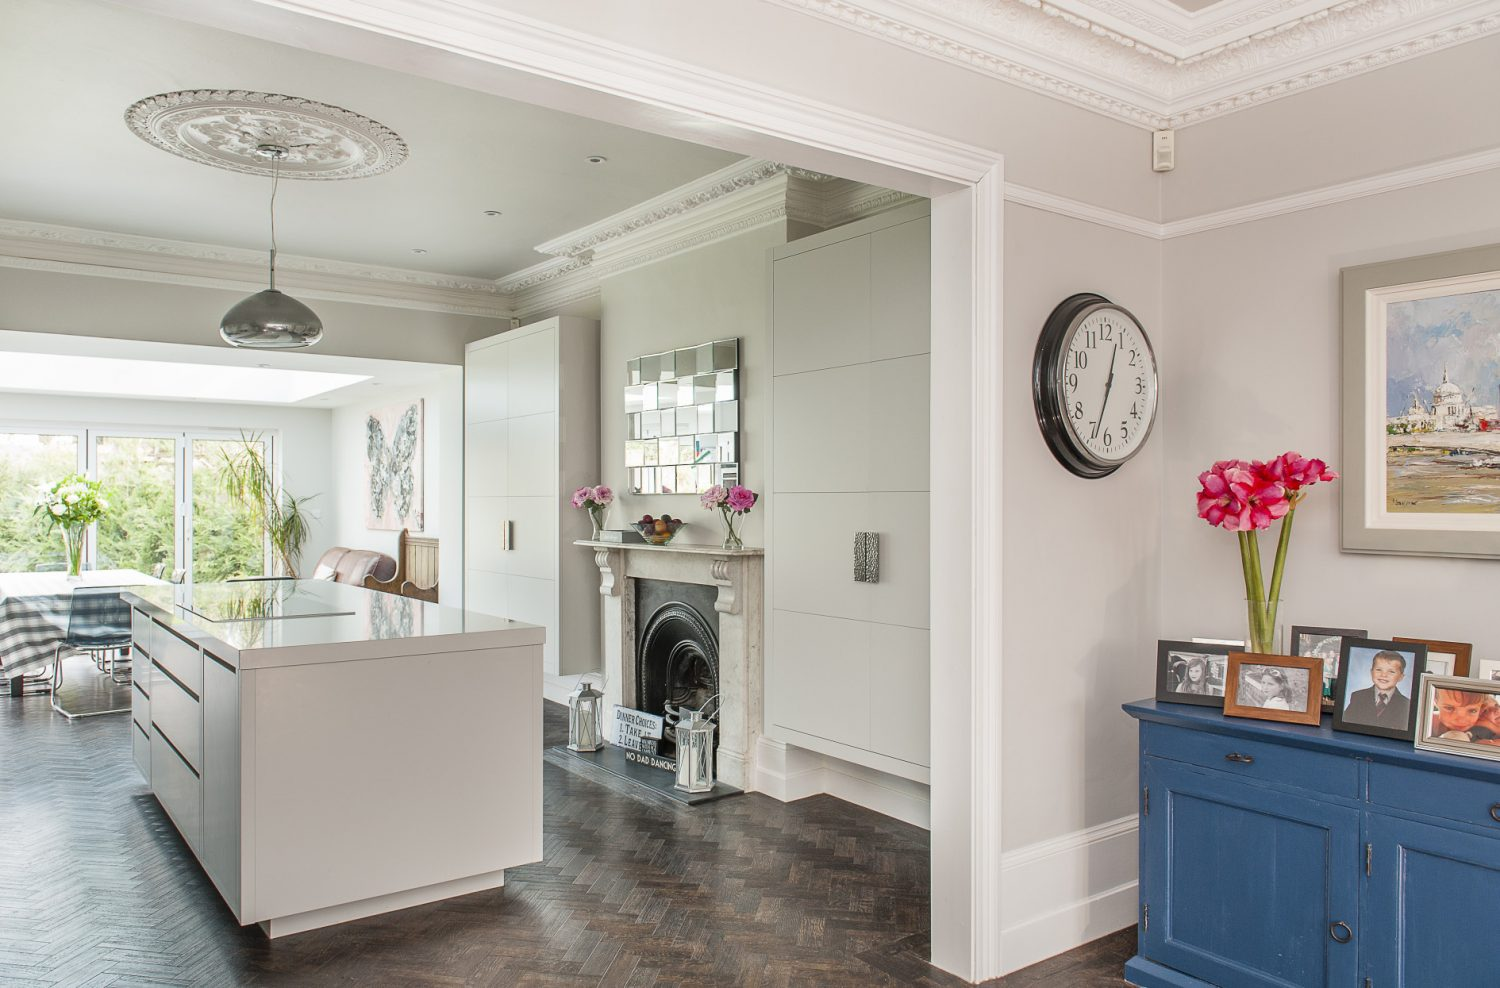 """The kitchen was designed and built by Chamber Furniture in Halstead. """"It's the first time I've had a bespoke kitchen in any of the properties we've had,"""" says Catherine. """"We've found that the best system when we're doing up a house while living in it is to tackle the kitchen last and we've always seemed to have exhausted the budget by then."""""""